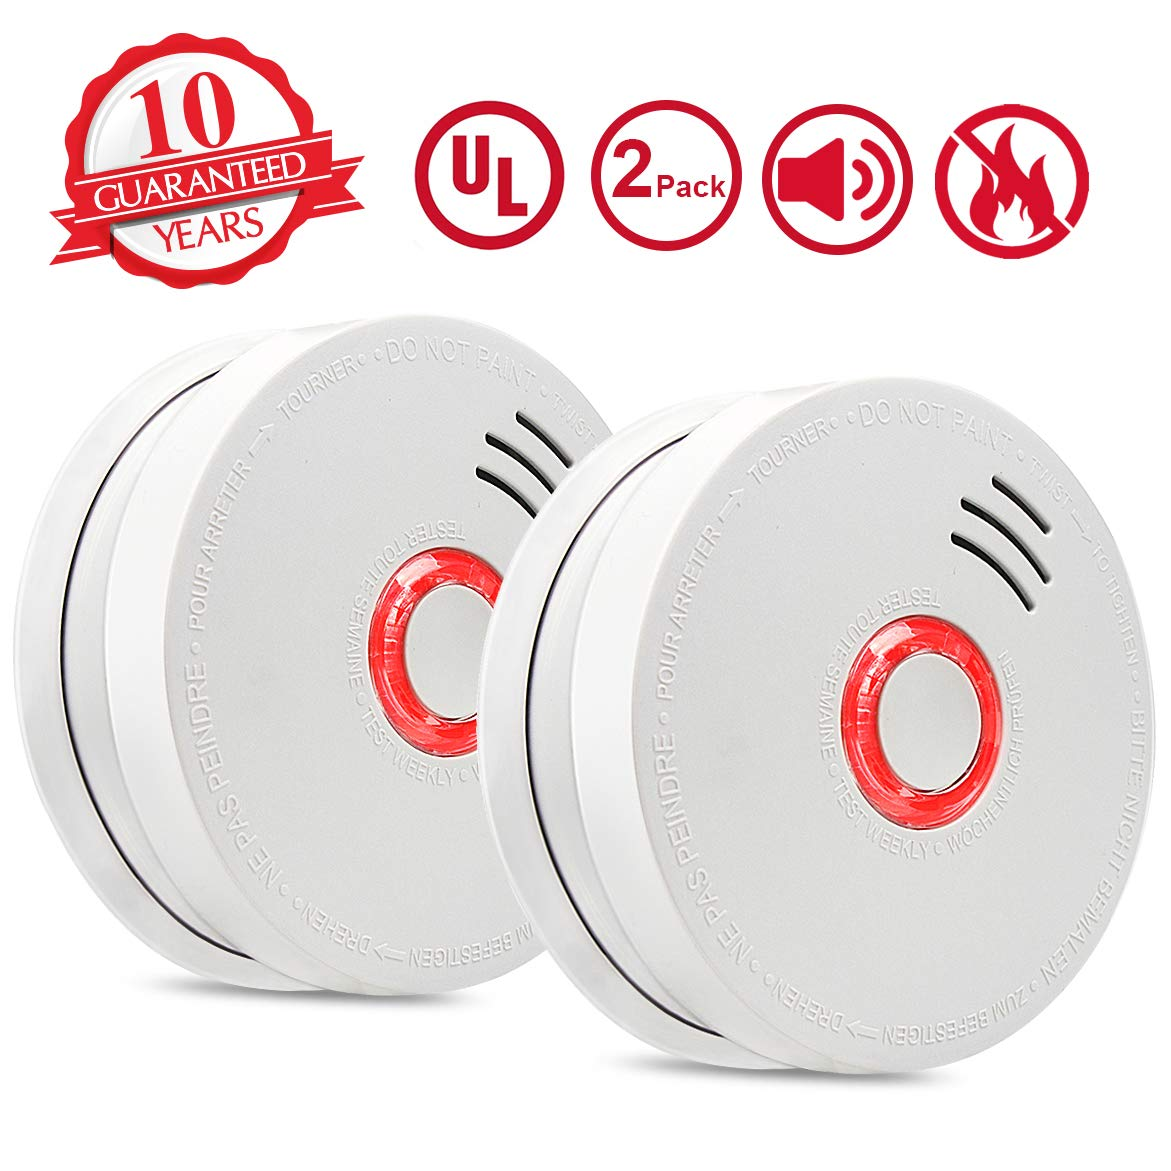 Smoke Alarm Fire Alarm 2 Pack Smoke Detector with Test Button 9V Battery Powered Included Photoelectric Smoke Alarms with UL Listed Fire Safety for Bedroom Kitchen Corridor Bathroom and Hotel